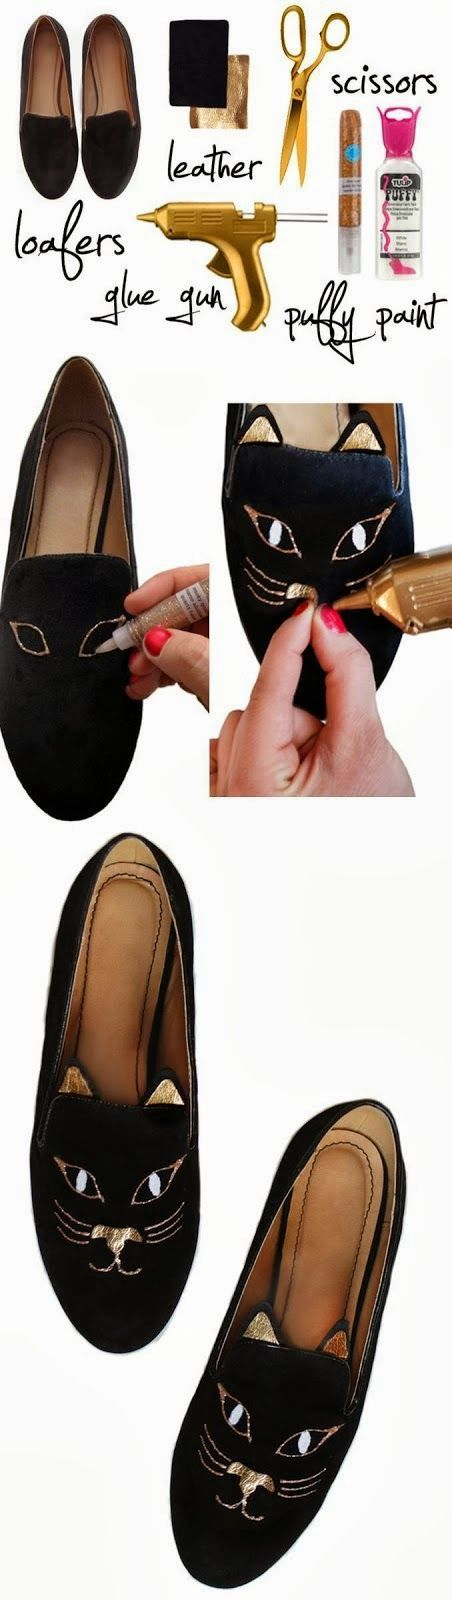 My DIY Projects: How To Paint Kitty in Your Loafers